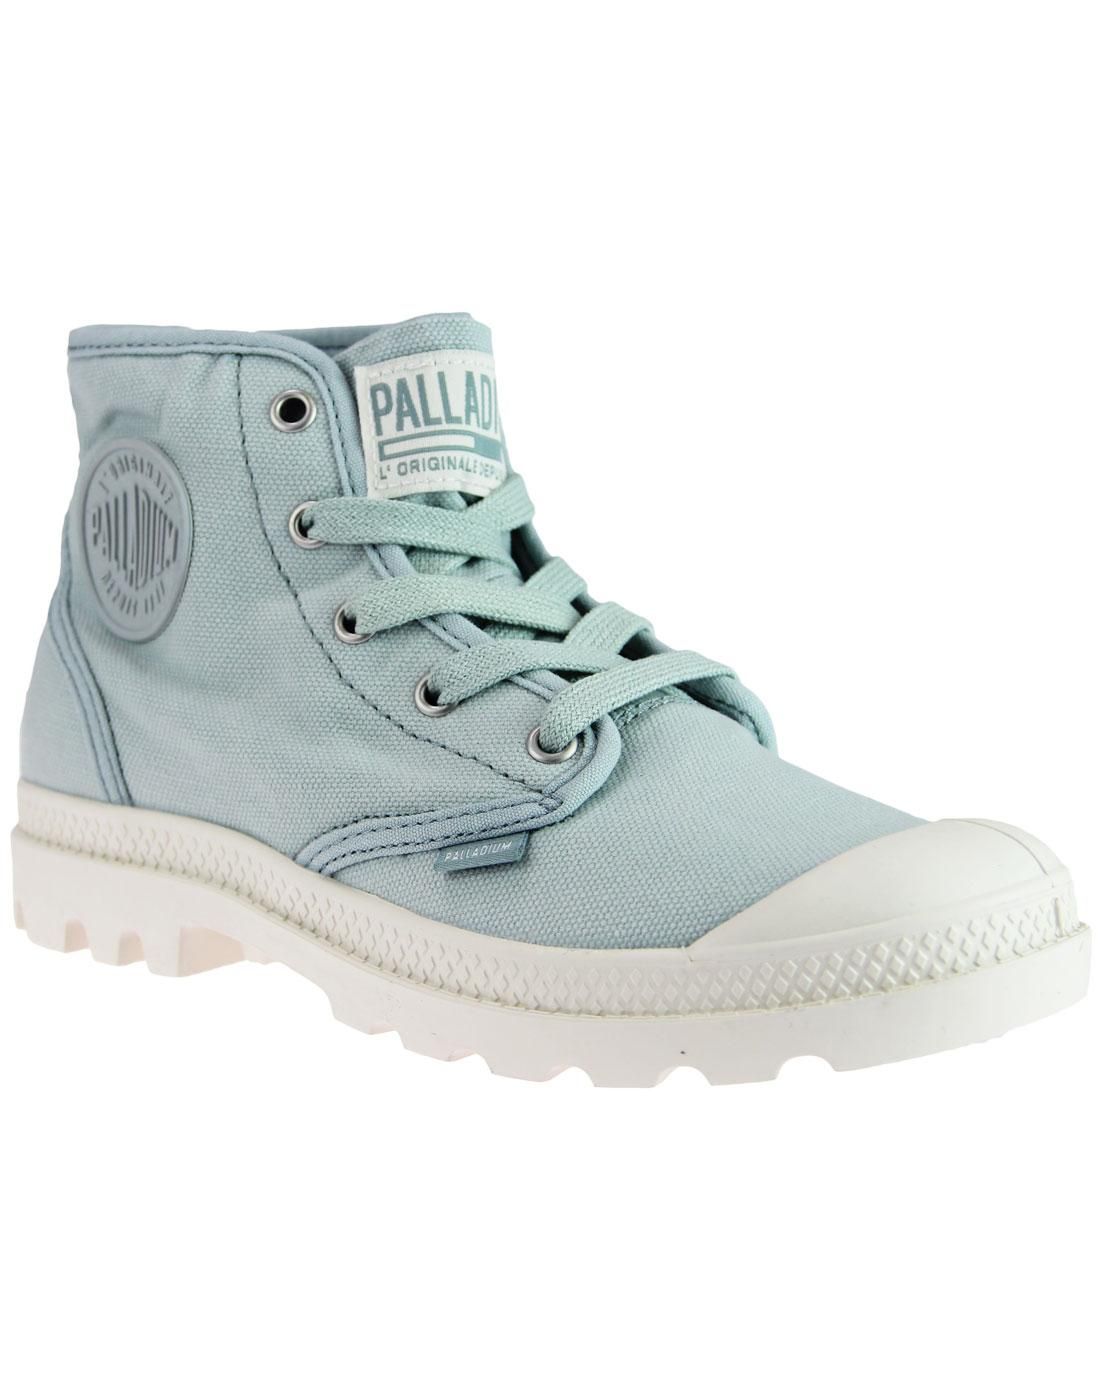 Pampa HI PALLADIUM Women's Retro Canvas Boots GM